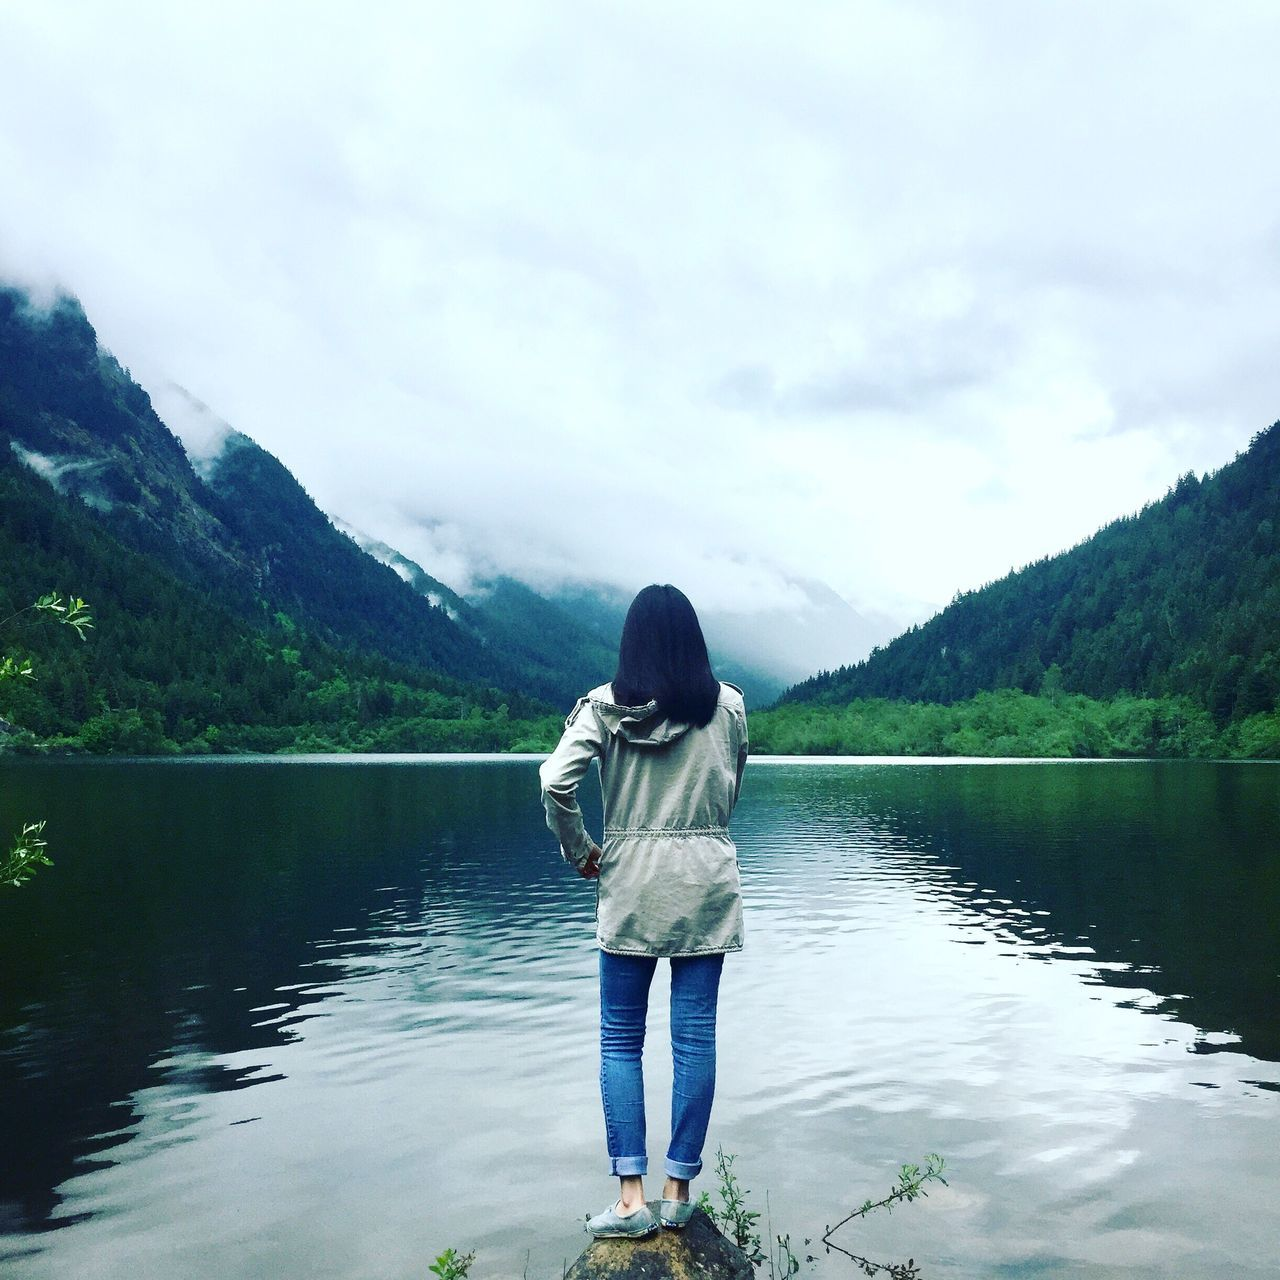 lake, water, mountain, beauty in nature, nature, reflection, one person, rear view, real people, day, casual clothing, tranquility, standing, sky, outdoors, tranquil scene, scenics, full length, tree, young adult, people